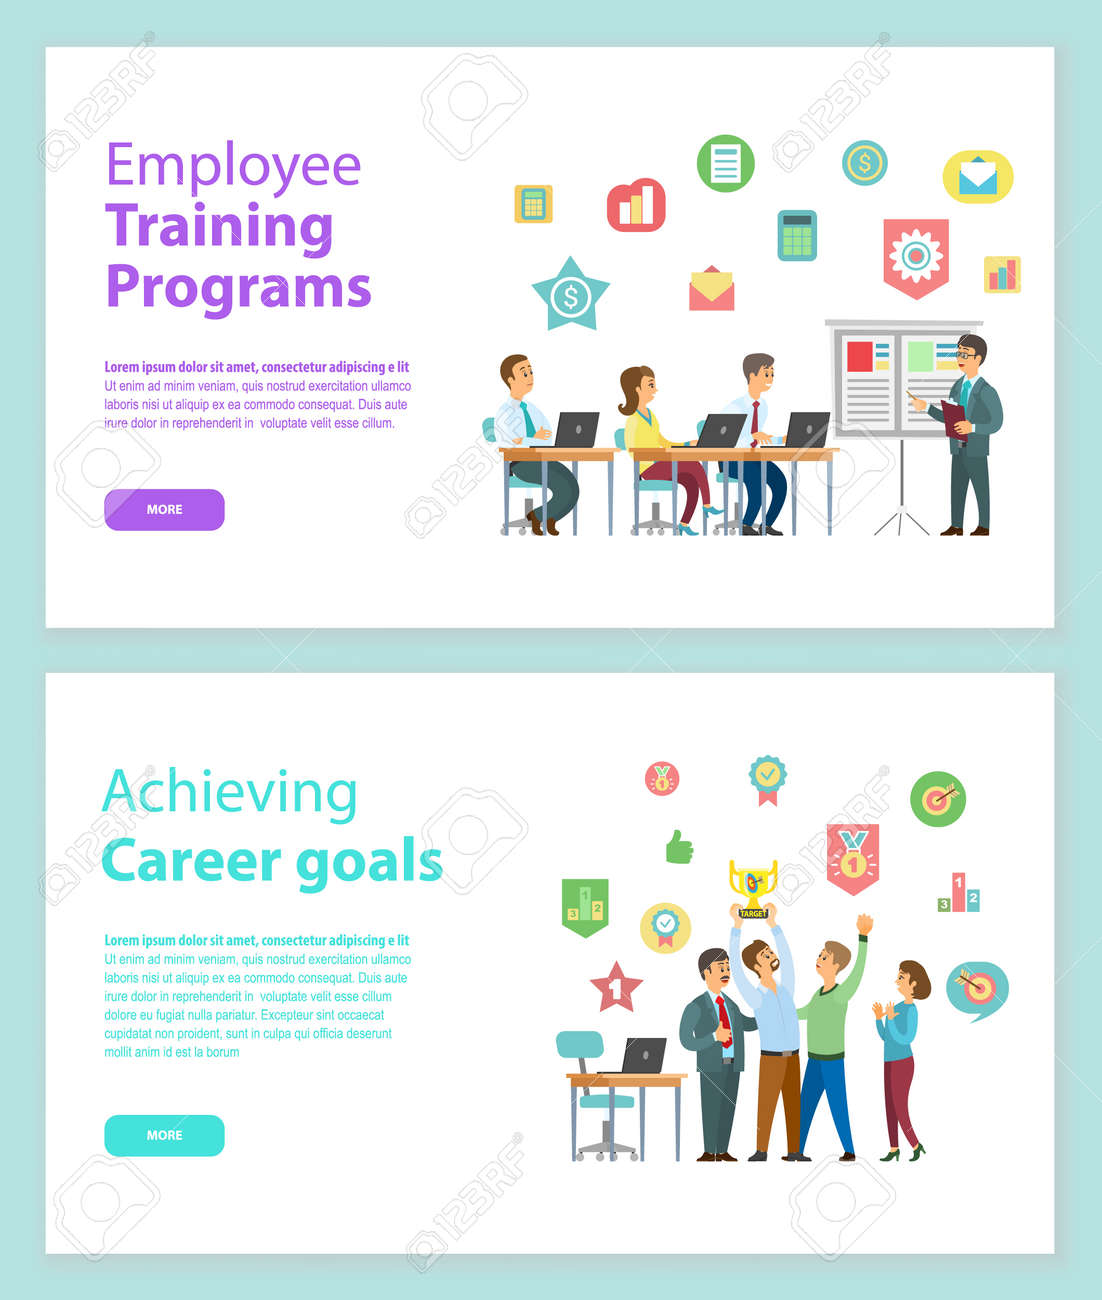 Employee training programs and achieving career goals web pages vector. People working with laptop and discussing strategy, workers holding award vector - 125270978